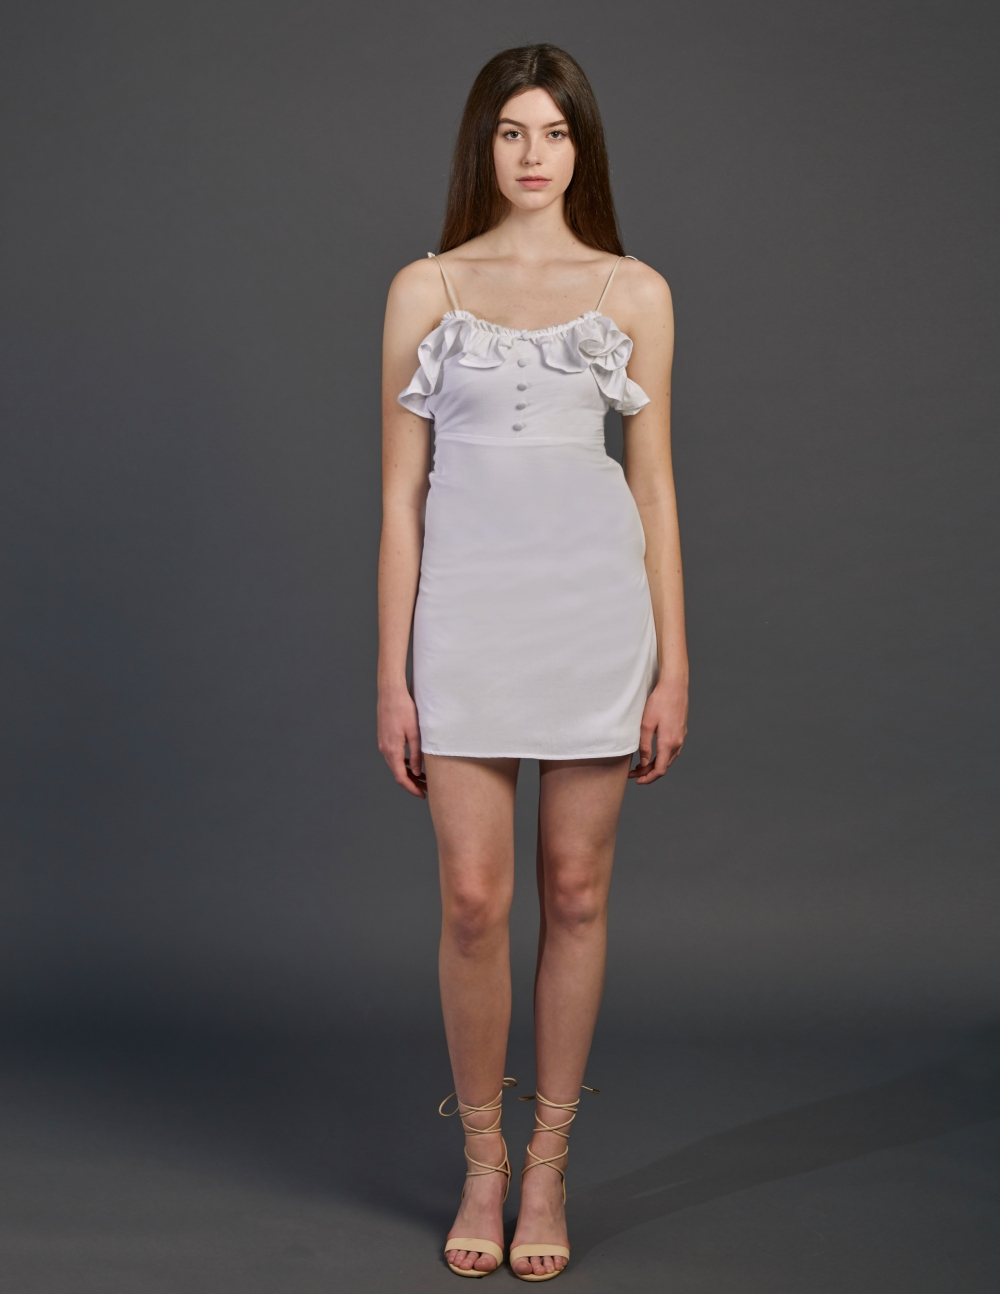 Alyssa-Nicole-Spring-2018-Madison-Dress-ANSP18103-1